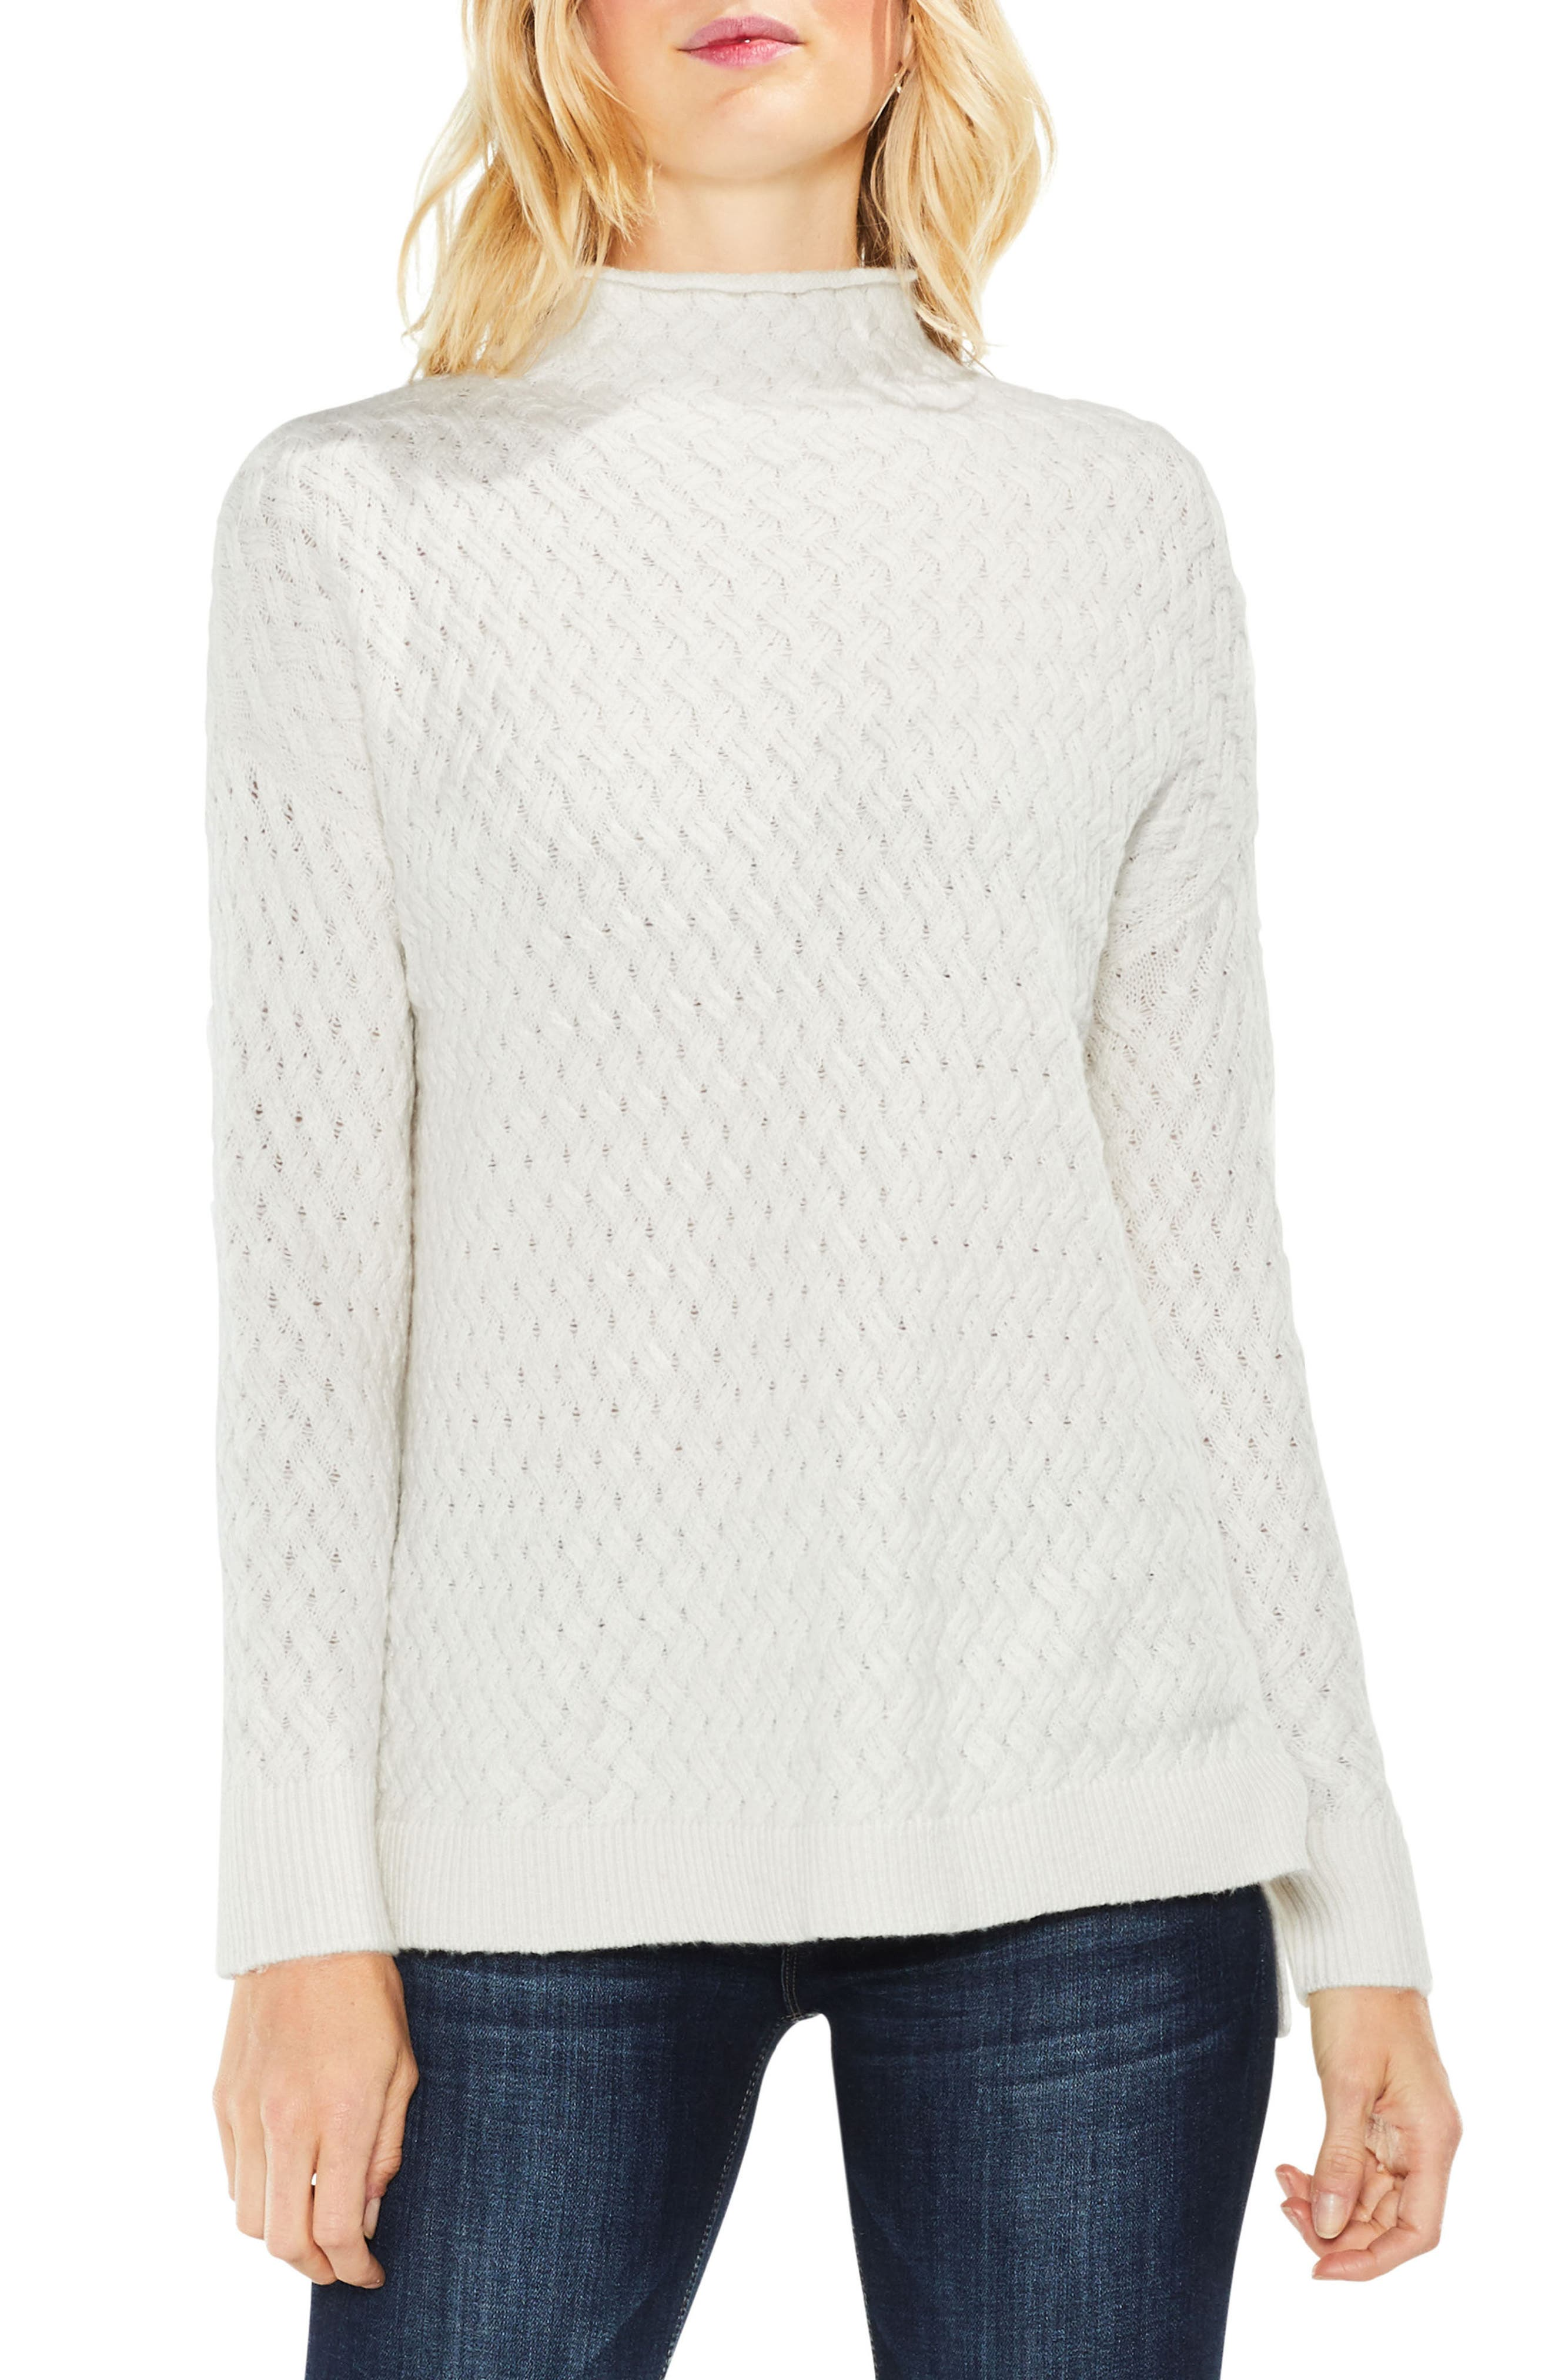 Main Image - Two by Vince Camuto Cable Mock Neck Sweater (Regular & Petite)